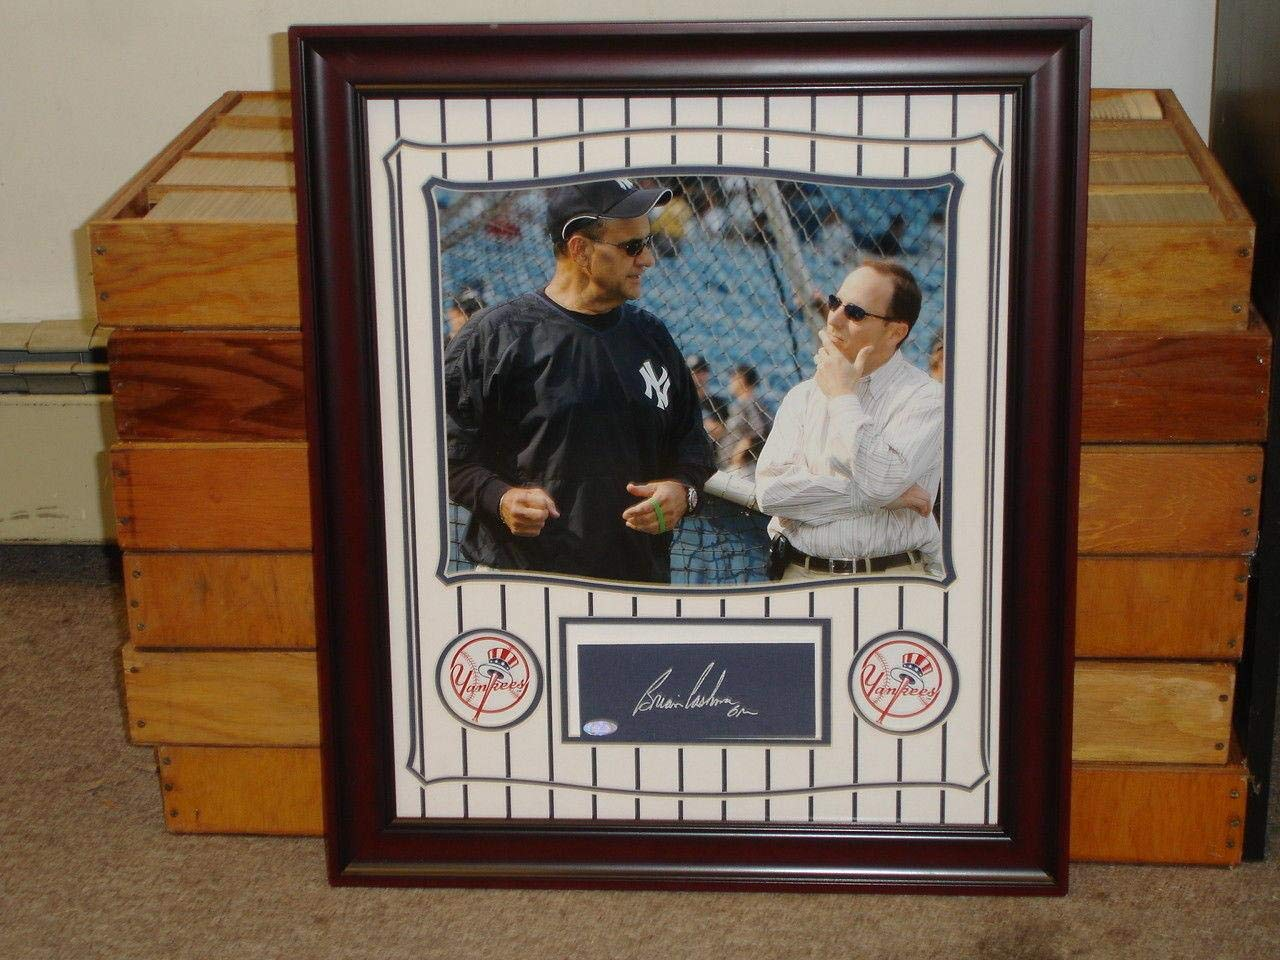 Brian Cashman NY Yankees GM Signed Framed 19x22 Display Piece w/Torre STEINER MLB Cut Signatures